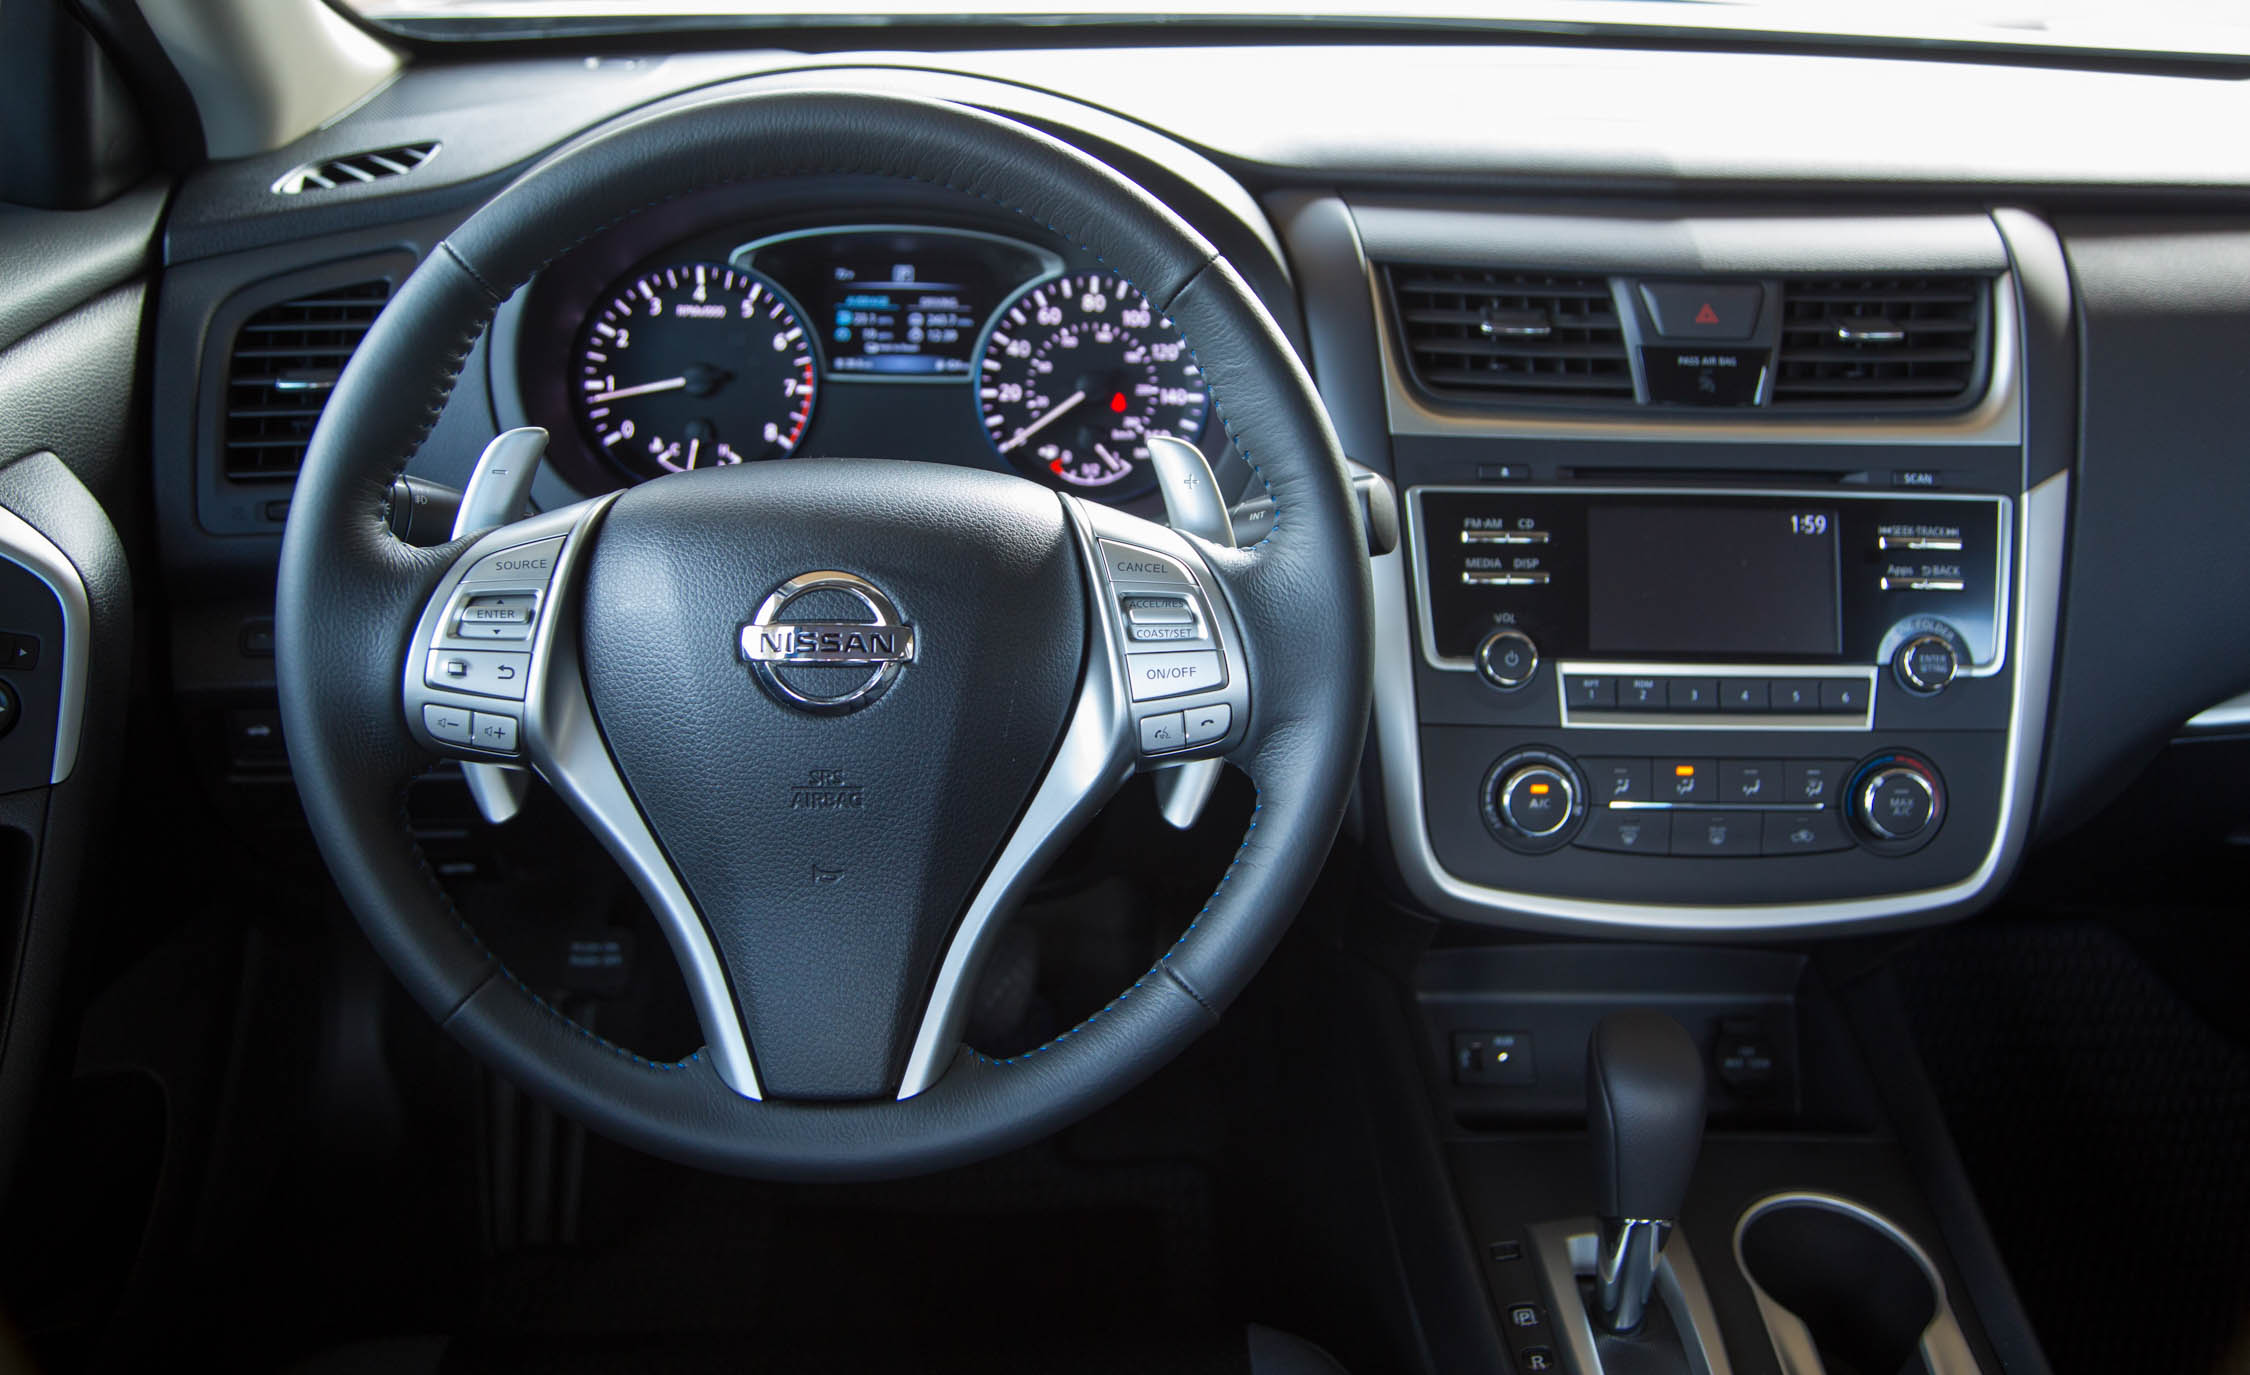 2016 Nissan Altima Interior Steering